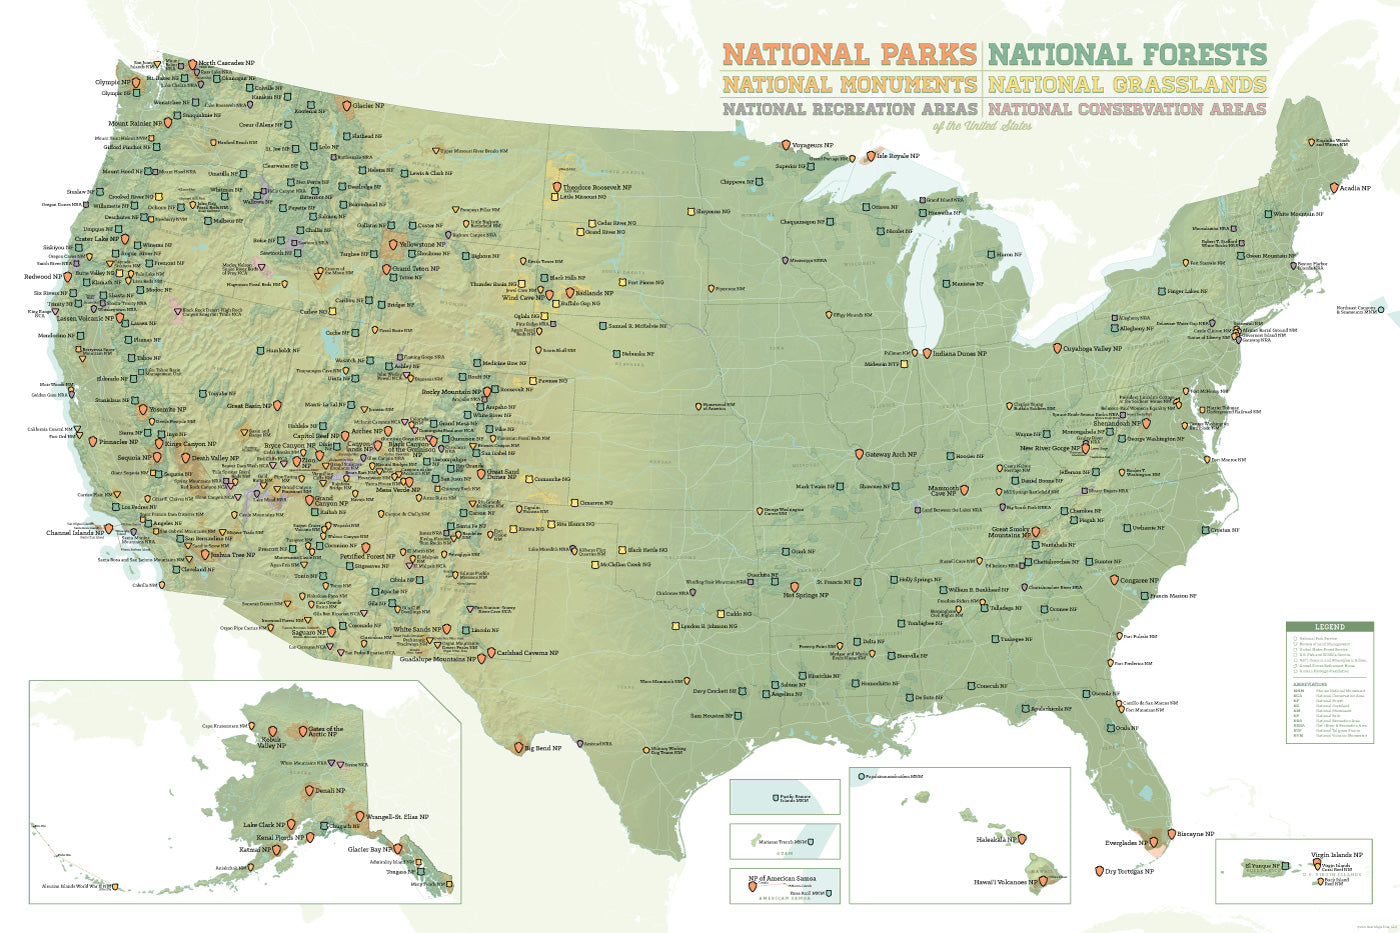 us national parks national monuments national forests map poster green white